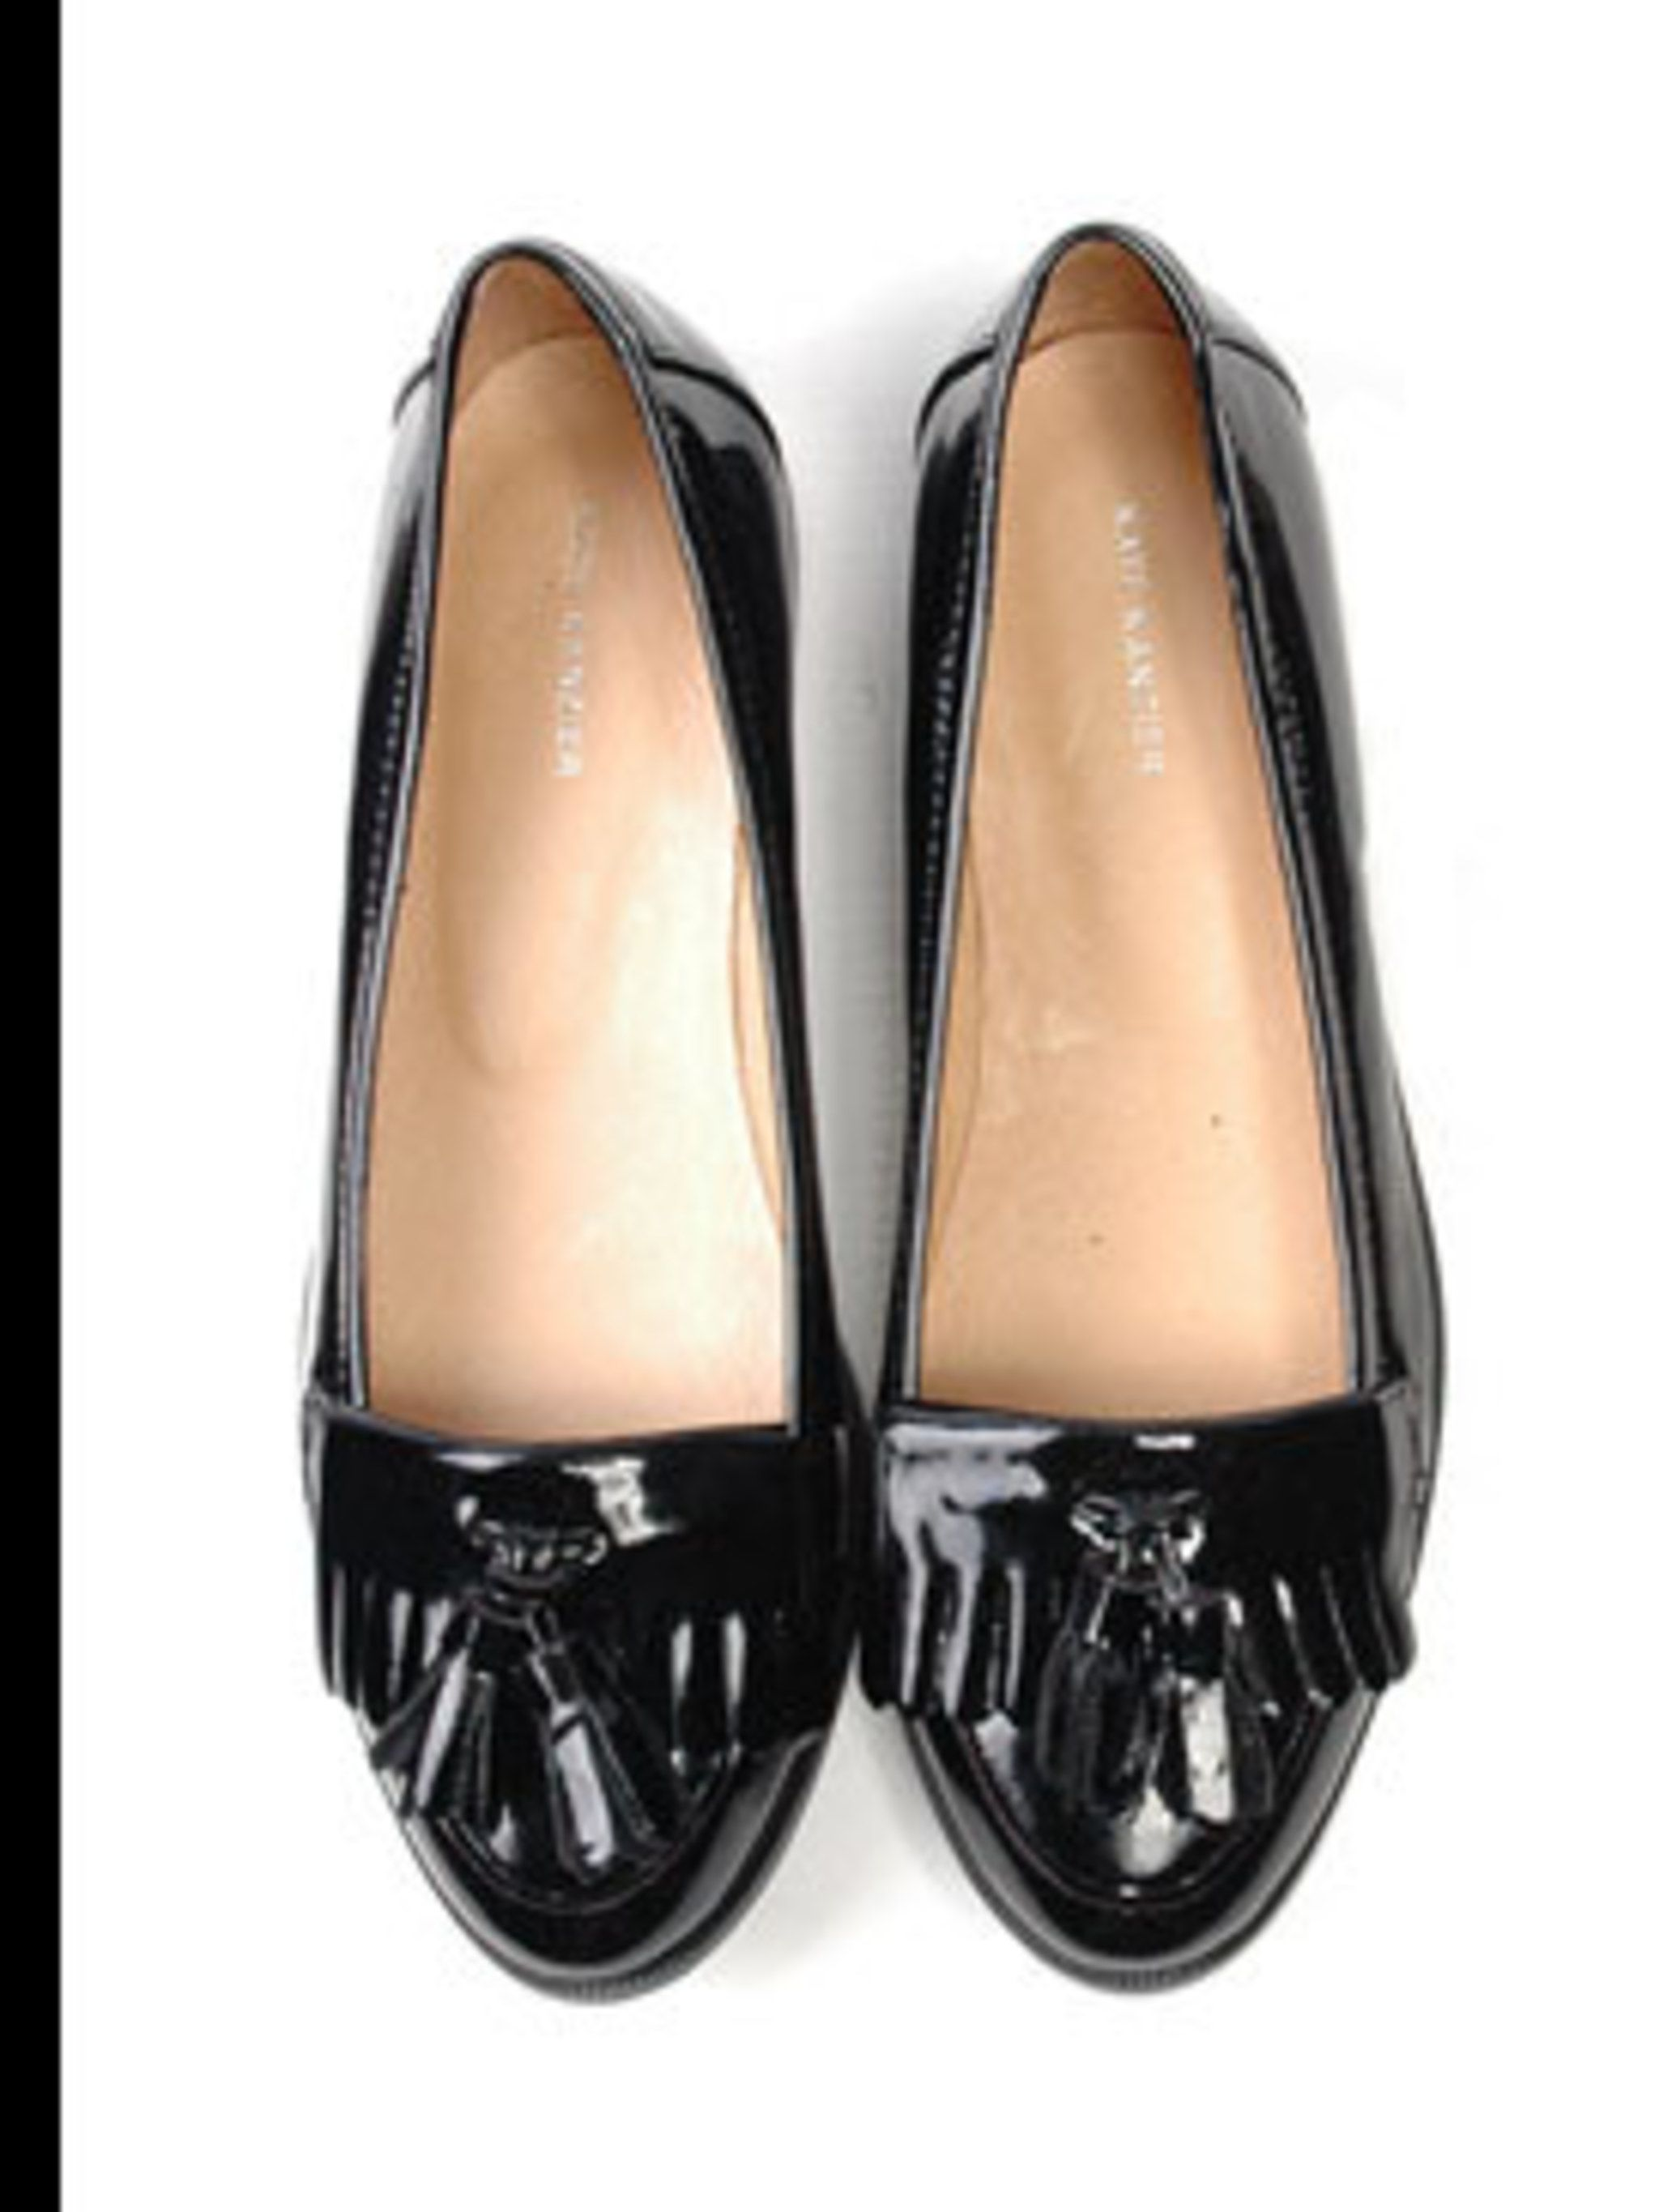 "<p>Loafers, £35 by <a href=""http://www.katekanzier.com/moreinfo.asp?product_id=1250&amp&#x3B;pid=417"">Kate Kanzier</a></p>"